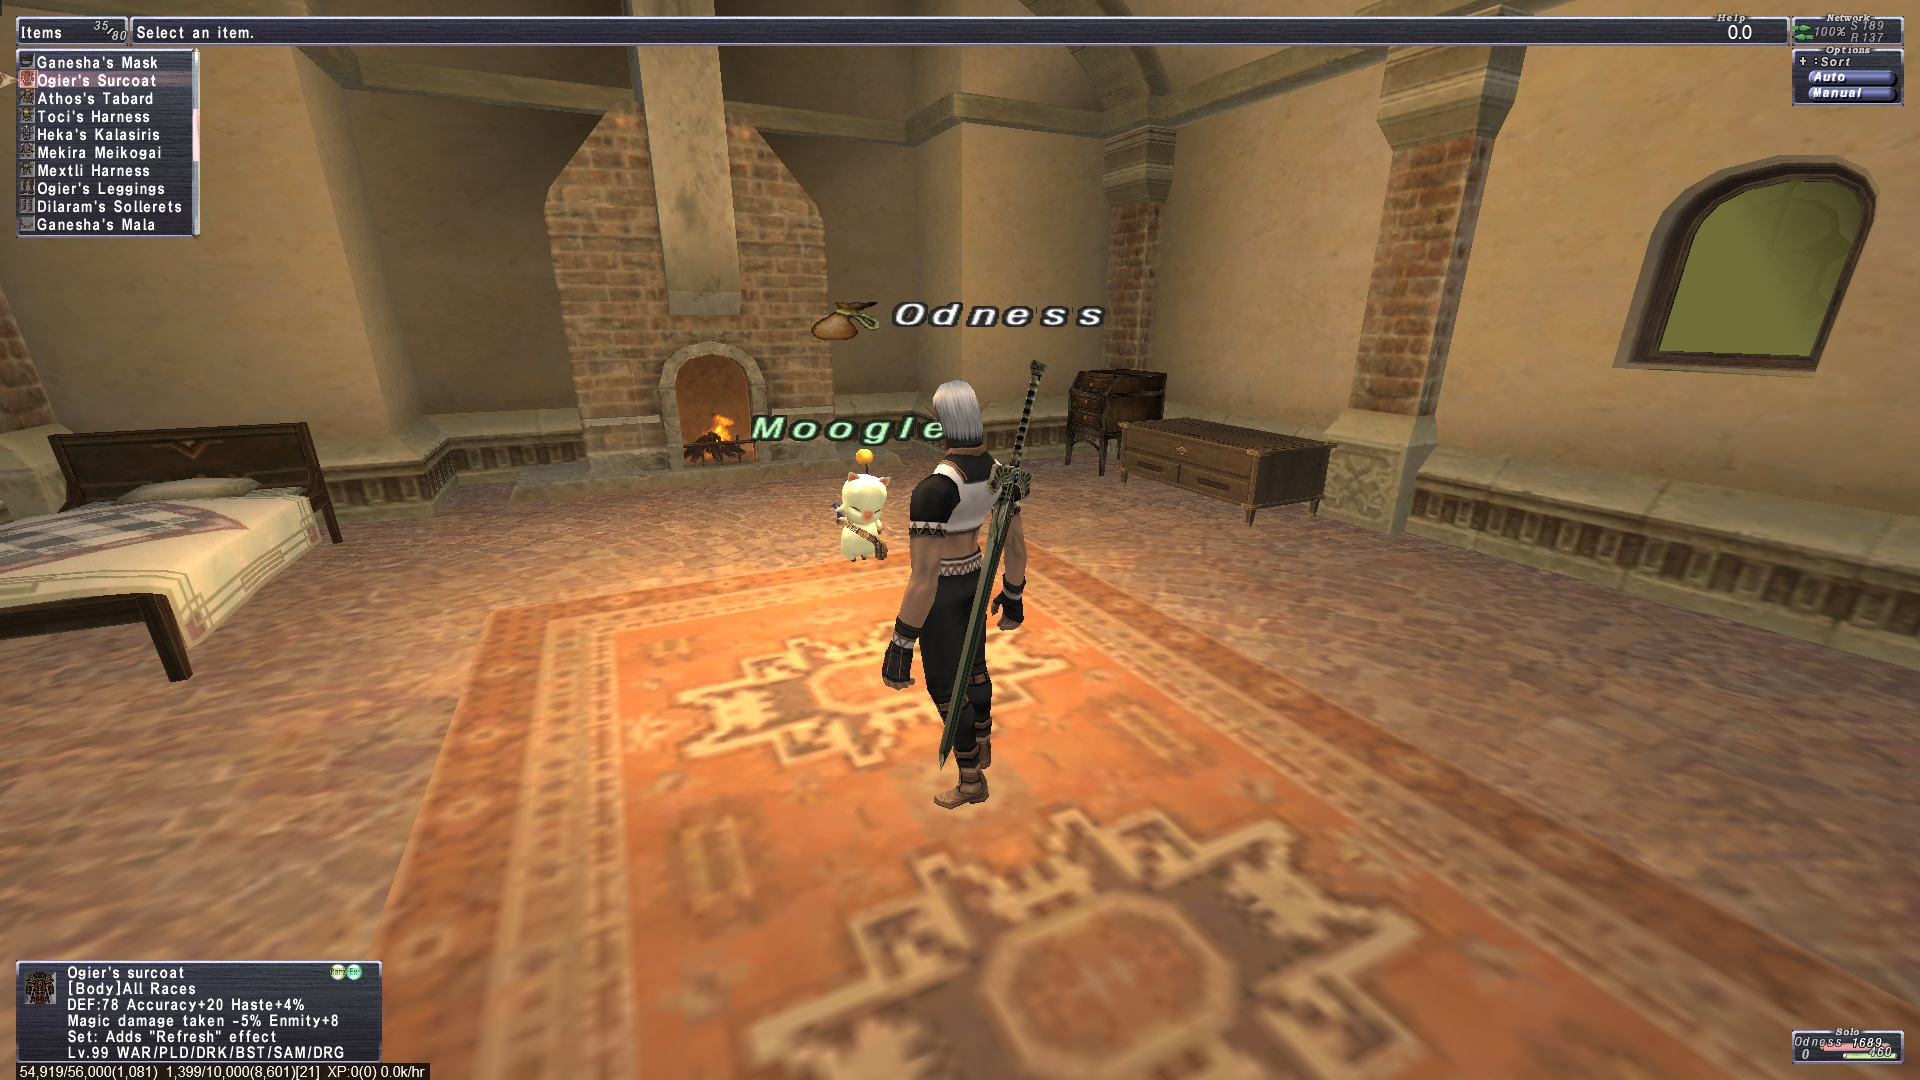 odesseiron ffxi shadowstalker ketrebu yarr ilma katarina haha names many ifrit holy bynes shit thats oldschool super dorp